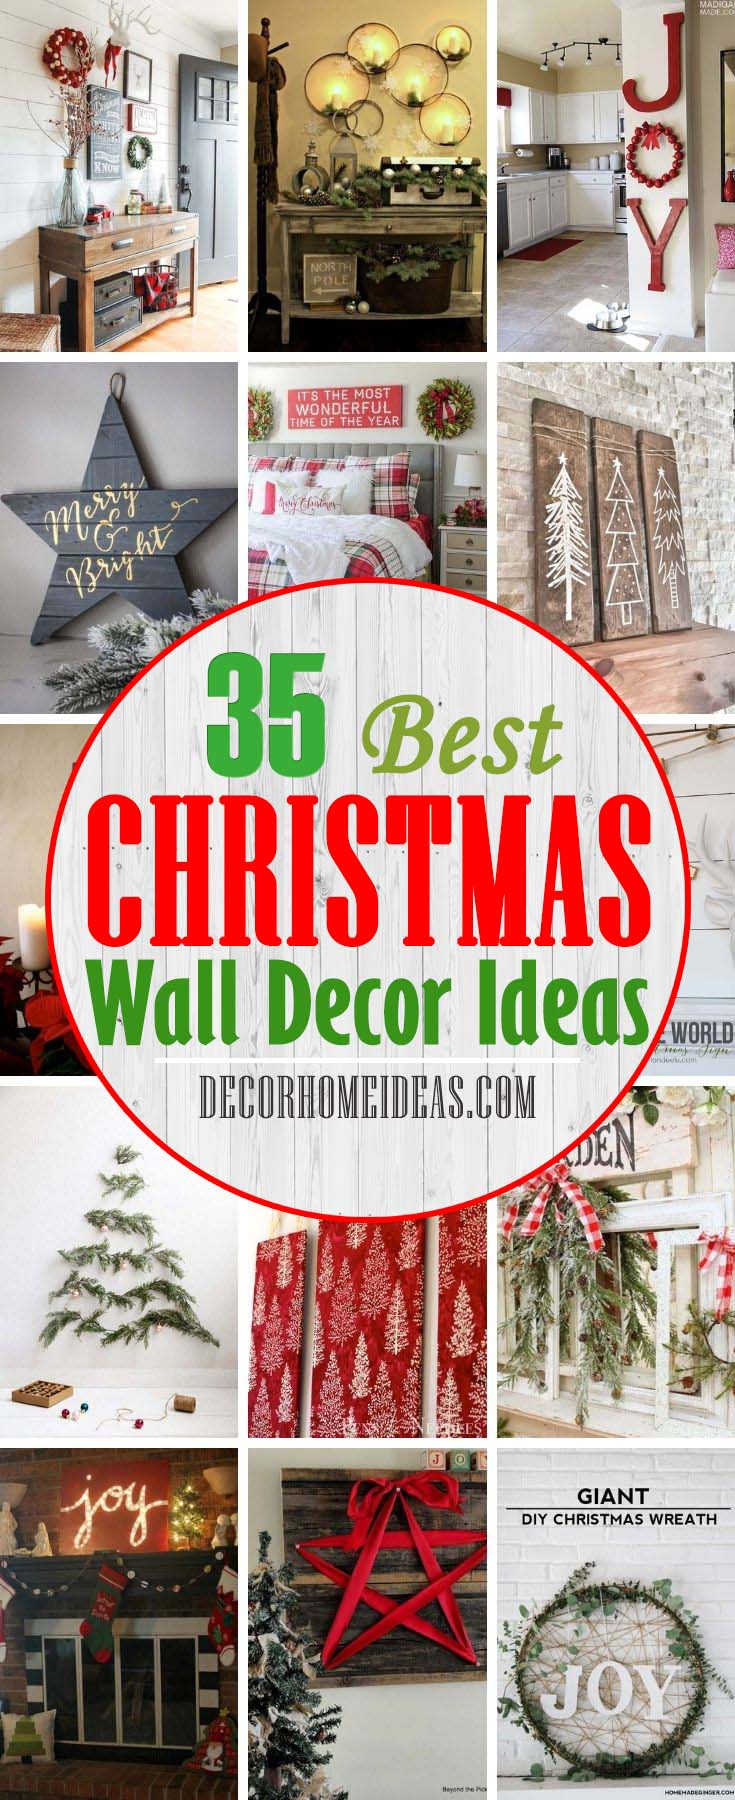 Best DIY Christmas Wall Decor Ideas. Dressing up your walls is the last thing that comes to mind with holiday decorations, but these festive Christmas wall decor ideas will convince you otherwise. #decorhomeideas